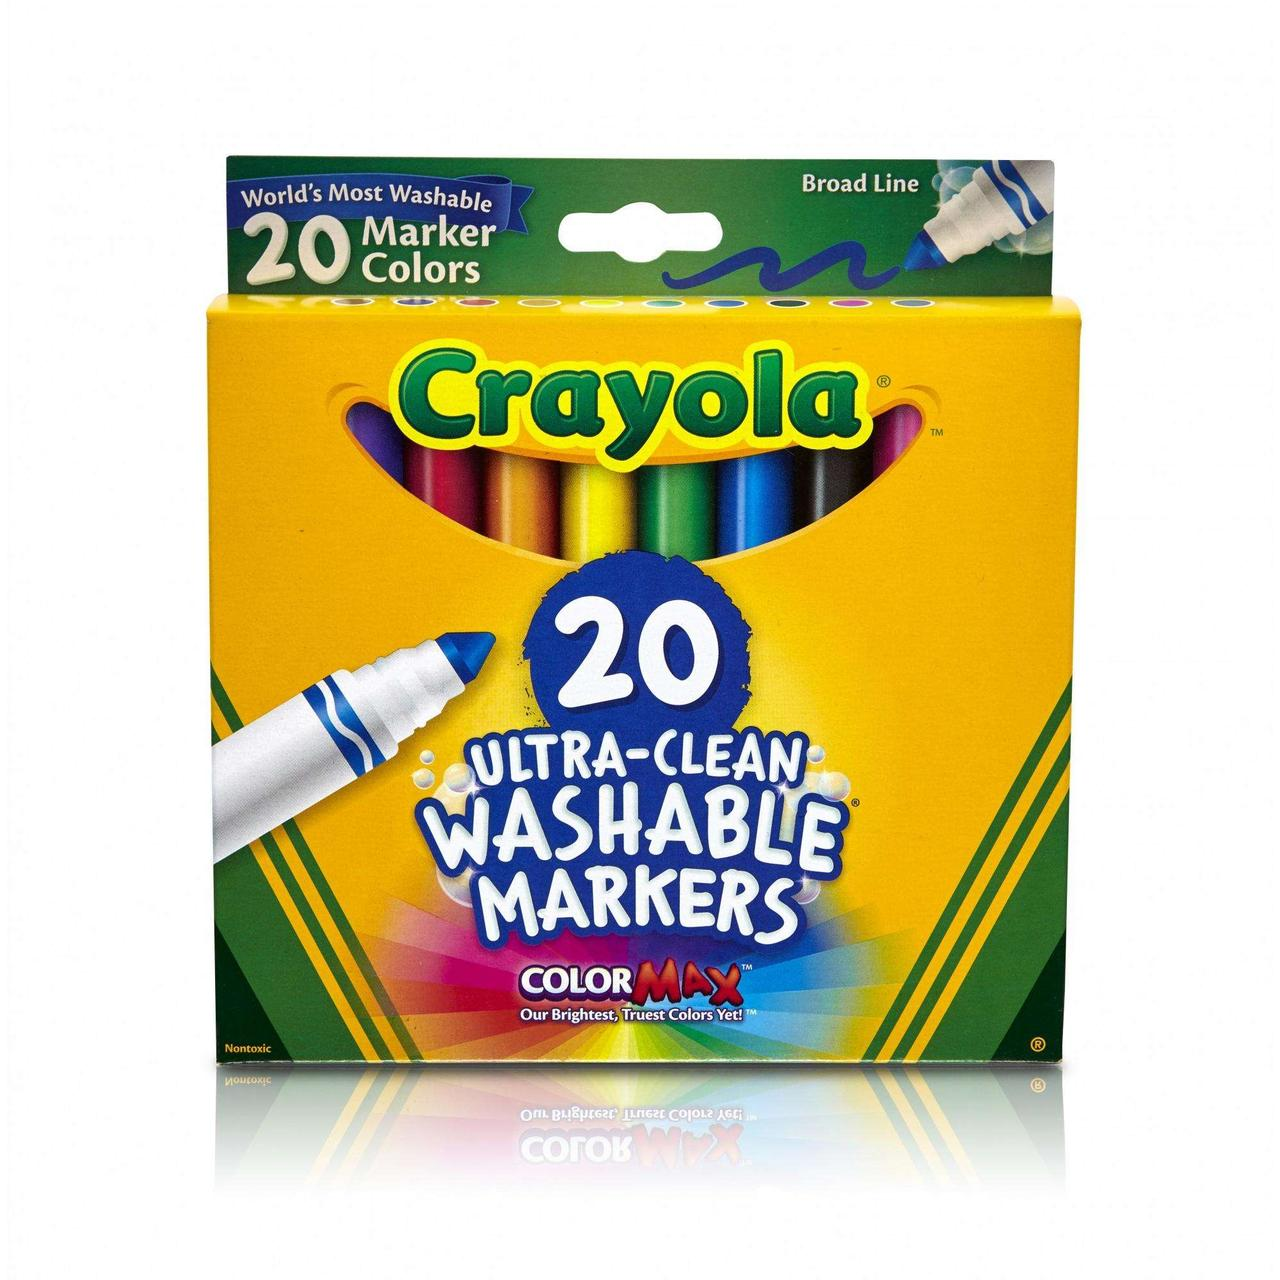 Crayola смываемые маркеры фломастеры 20 штук 20 Count Classic Ultra-Clean Washable Broad Line Markers